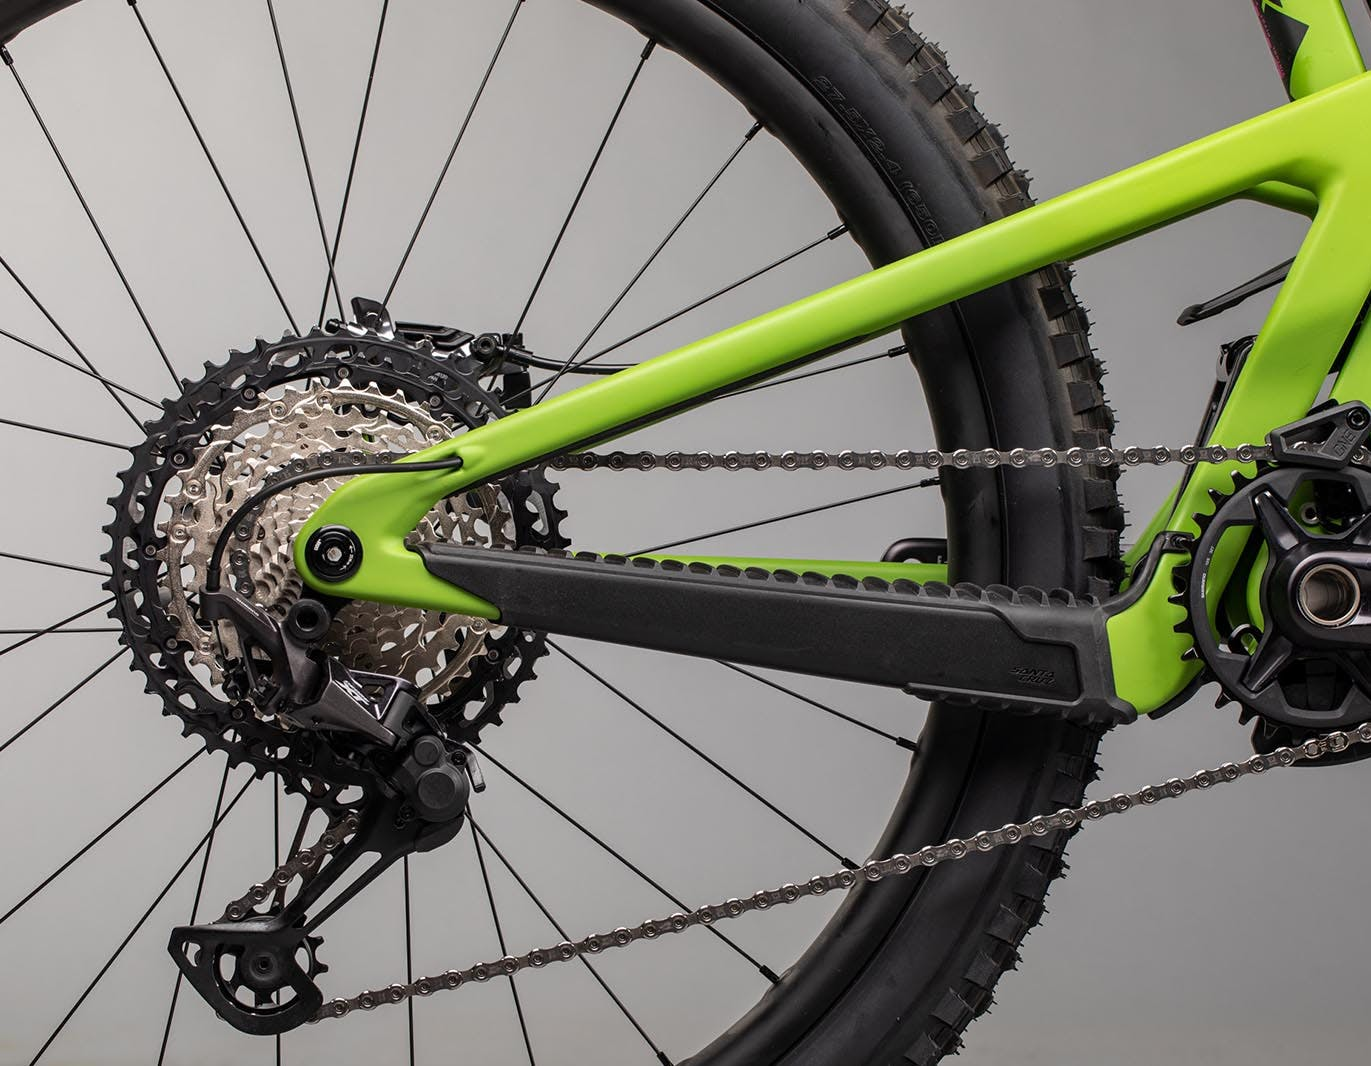 Chainstay and rear triangle profile on green Nomad